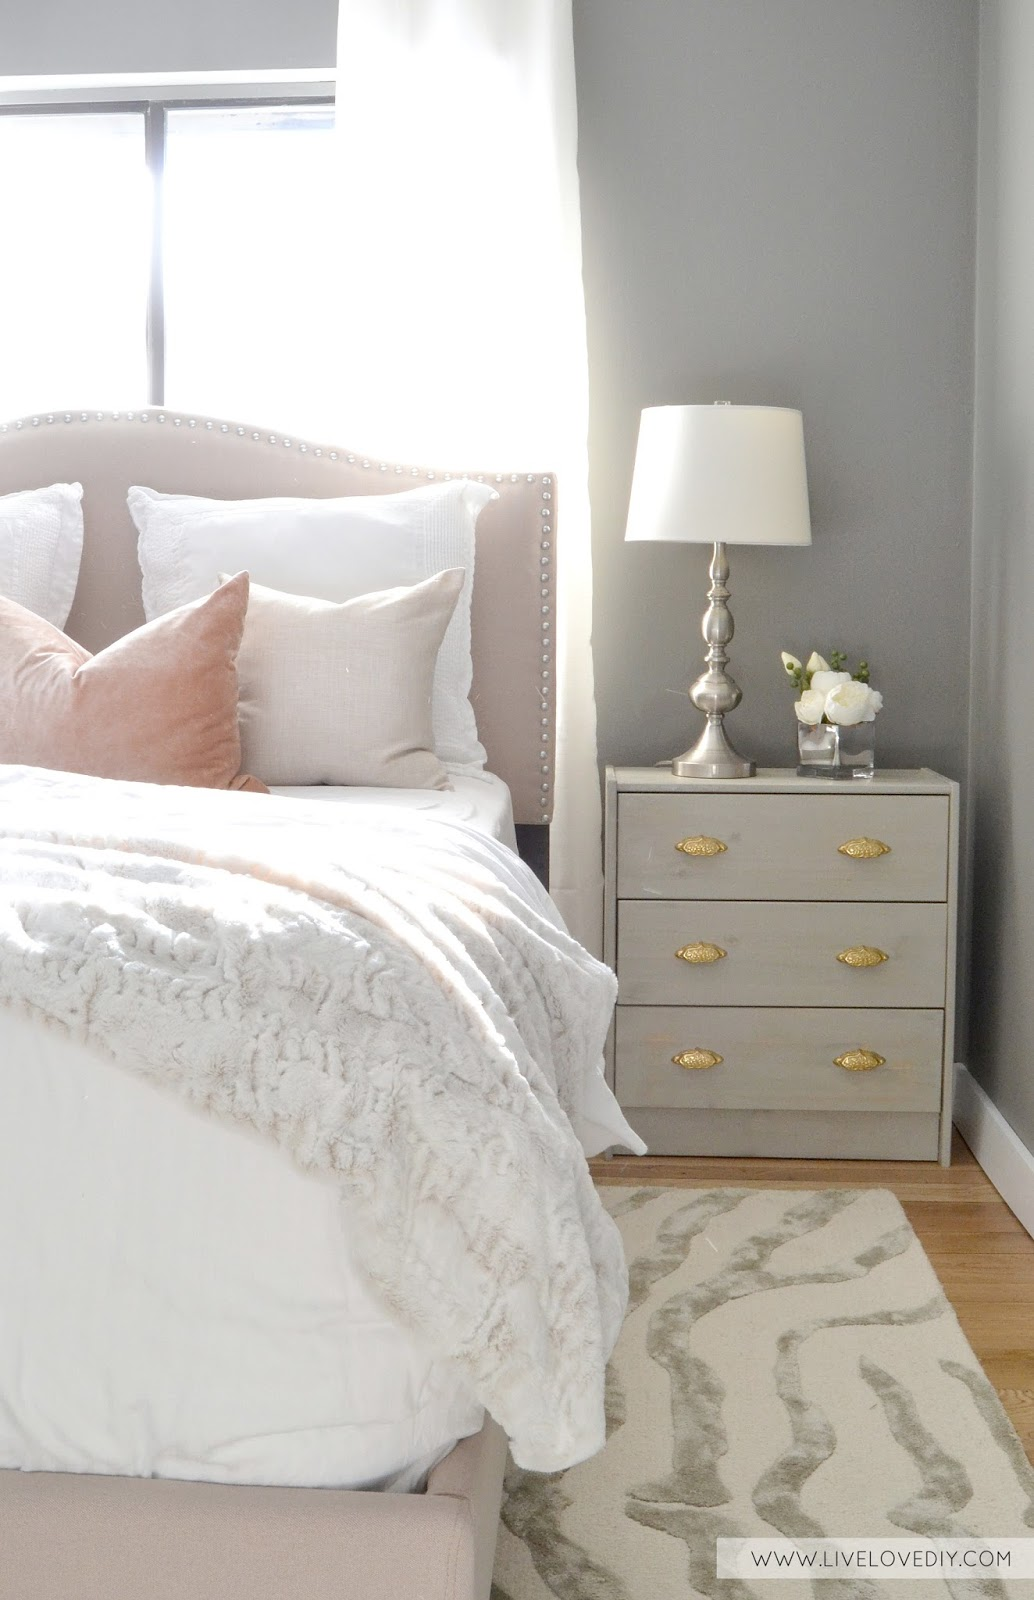 Staining Bedroom Furniture Livelovediy Diy Ikea Rast Makeover With Weathered Gray Wood Stain